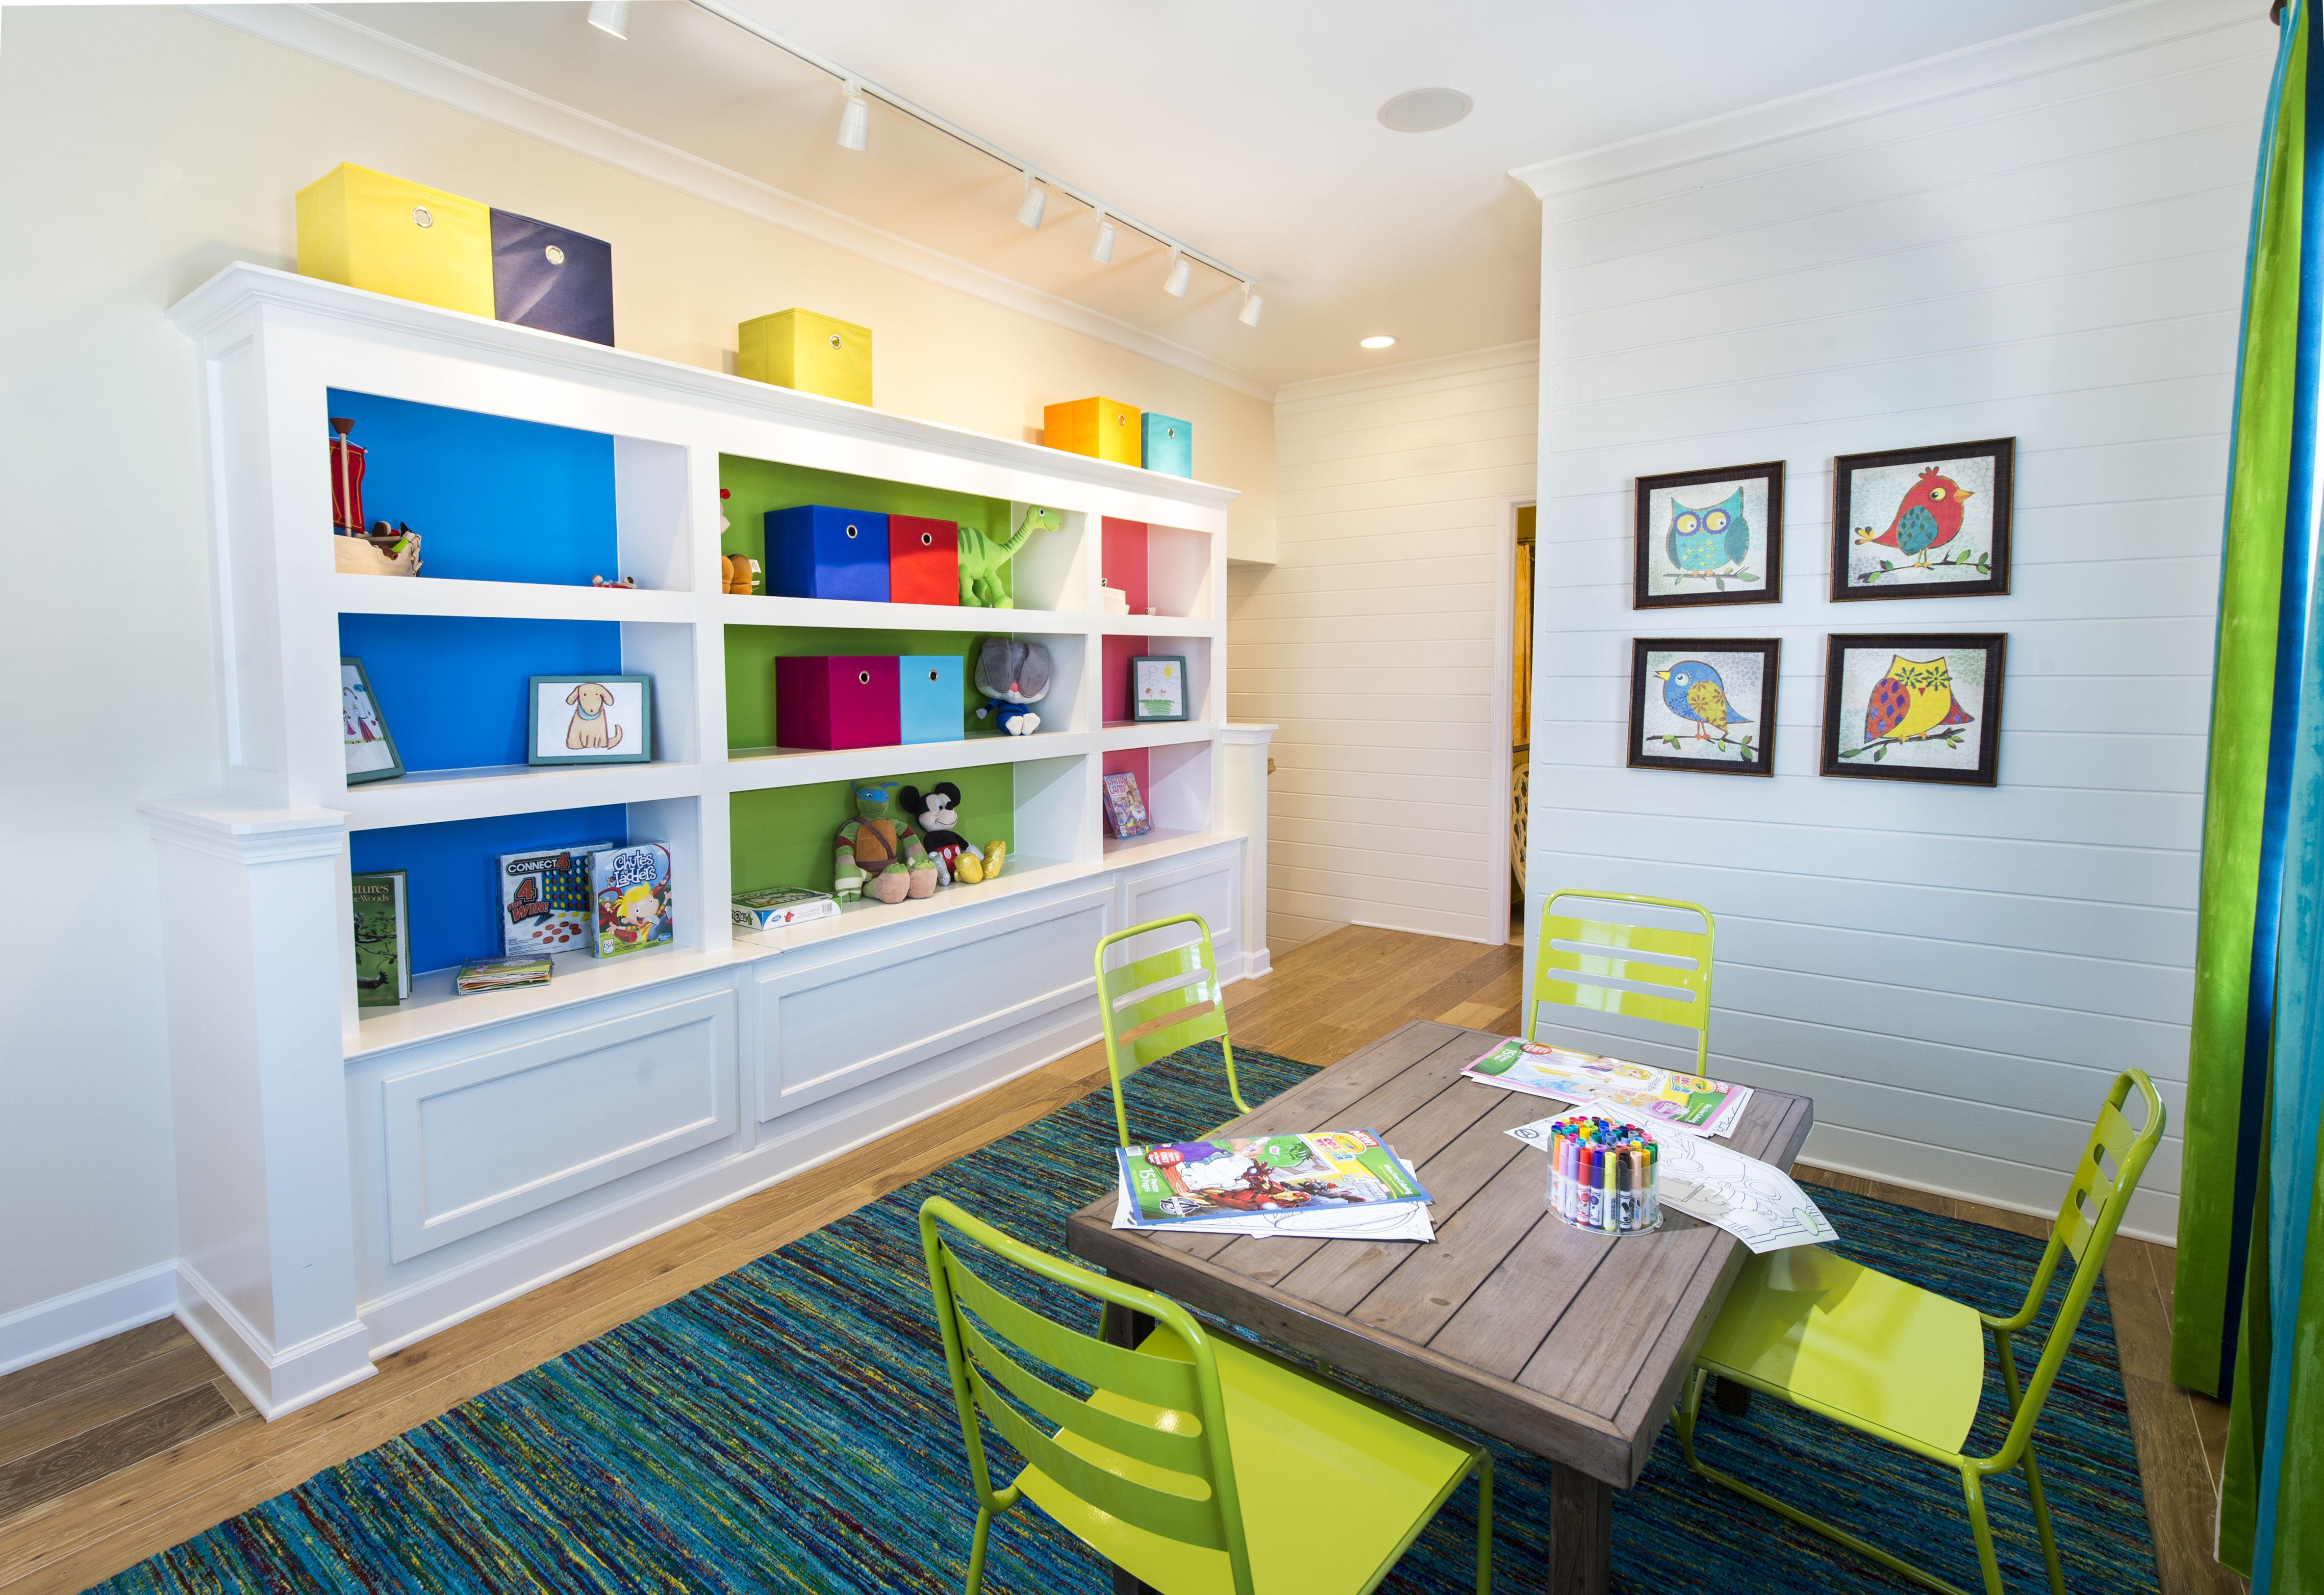 Design your playroom with bold splashes of color and bright decor that will keep your kids feeling happy! | Pulte Homes